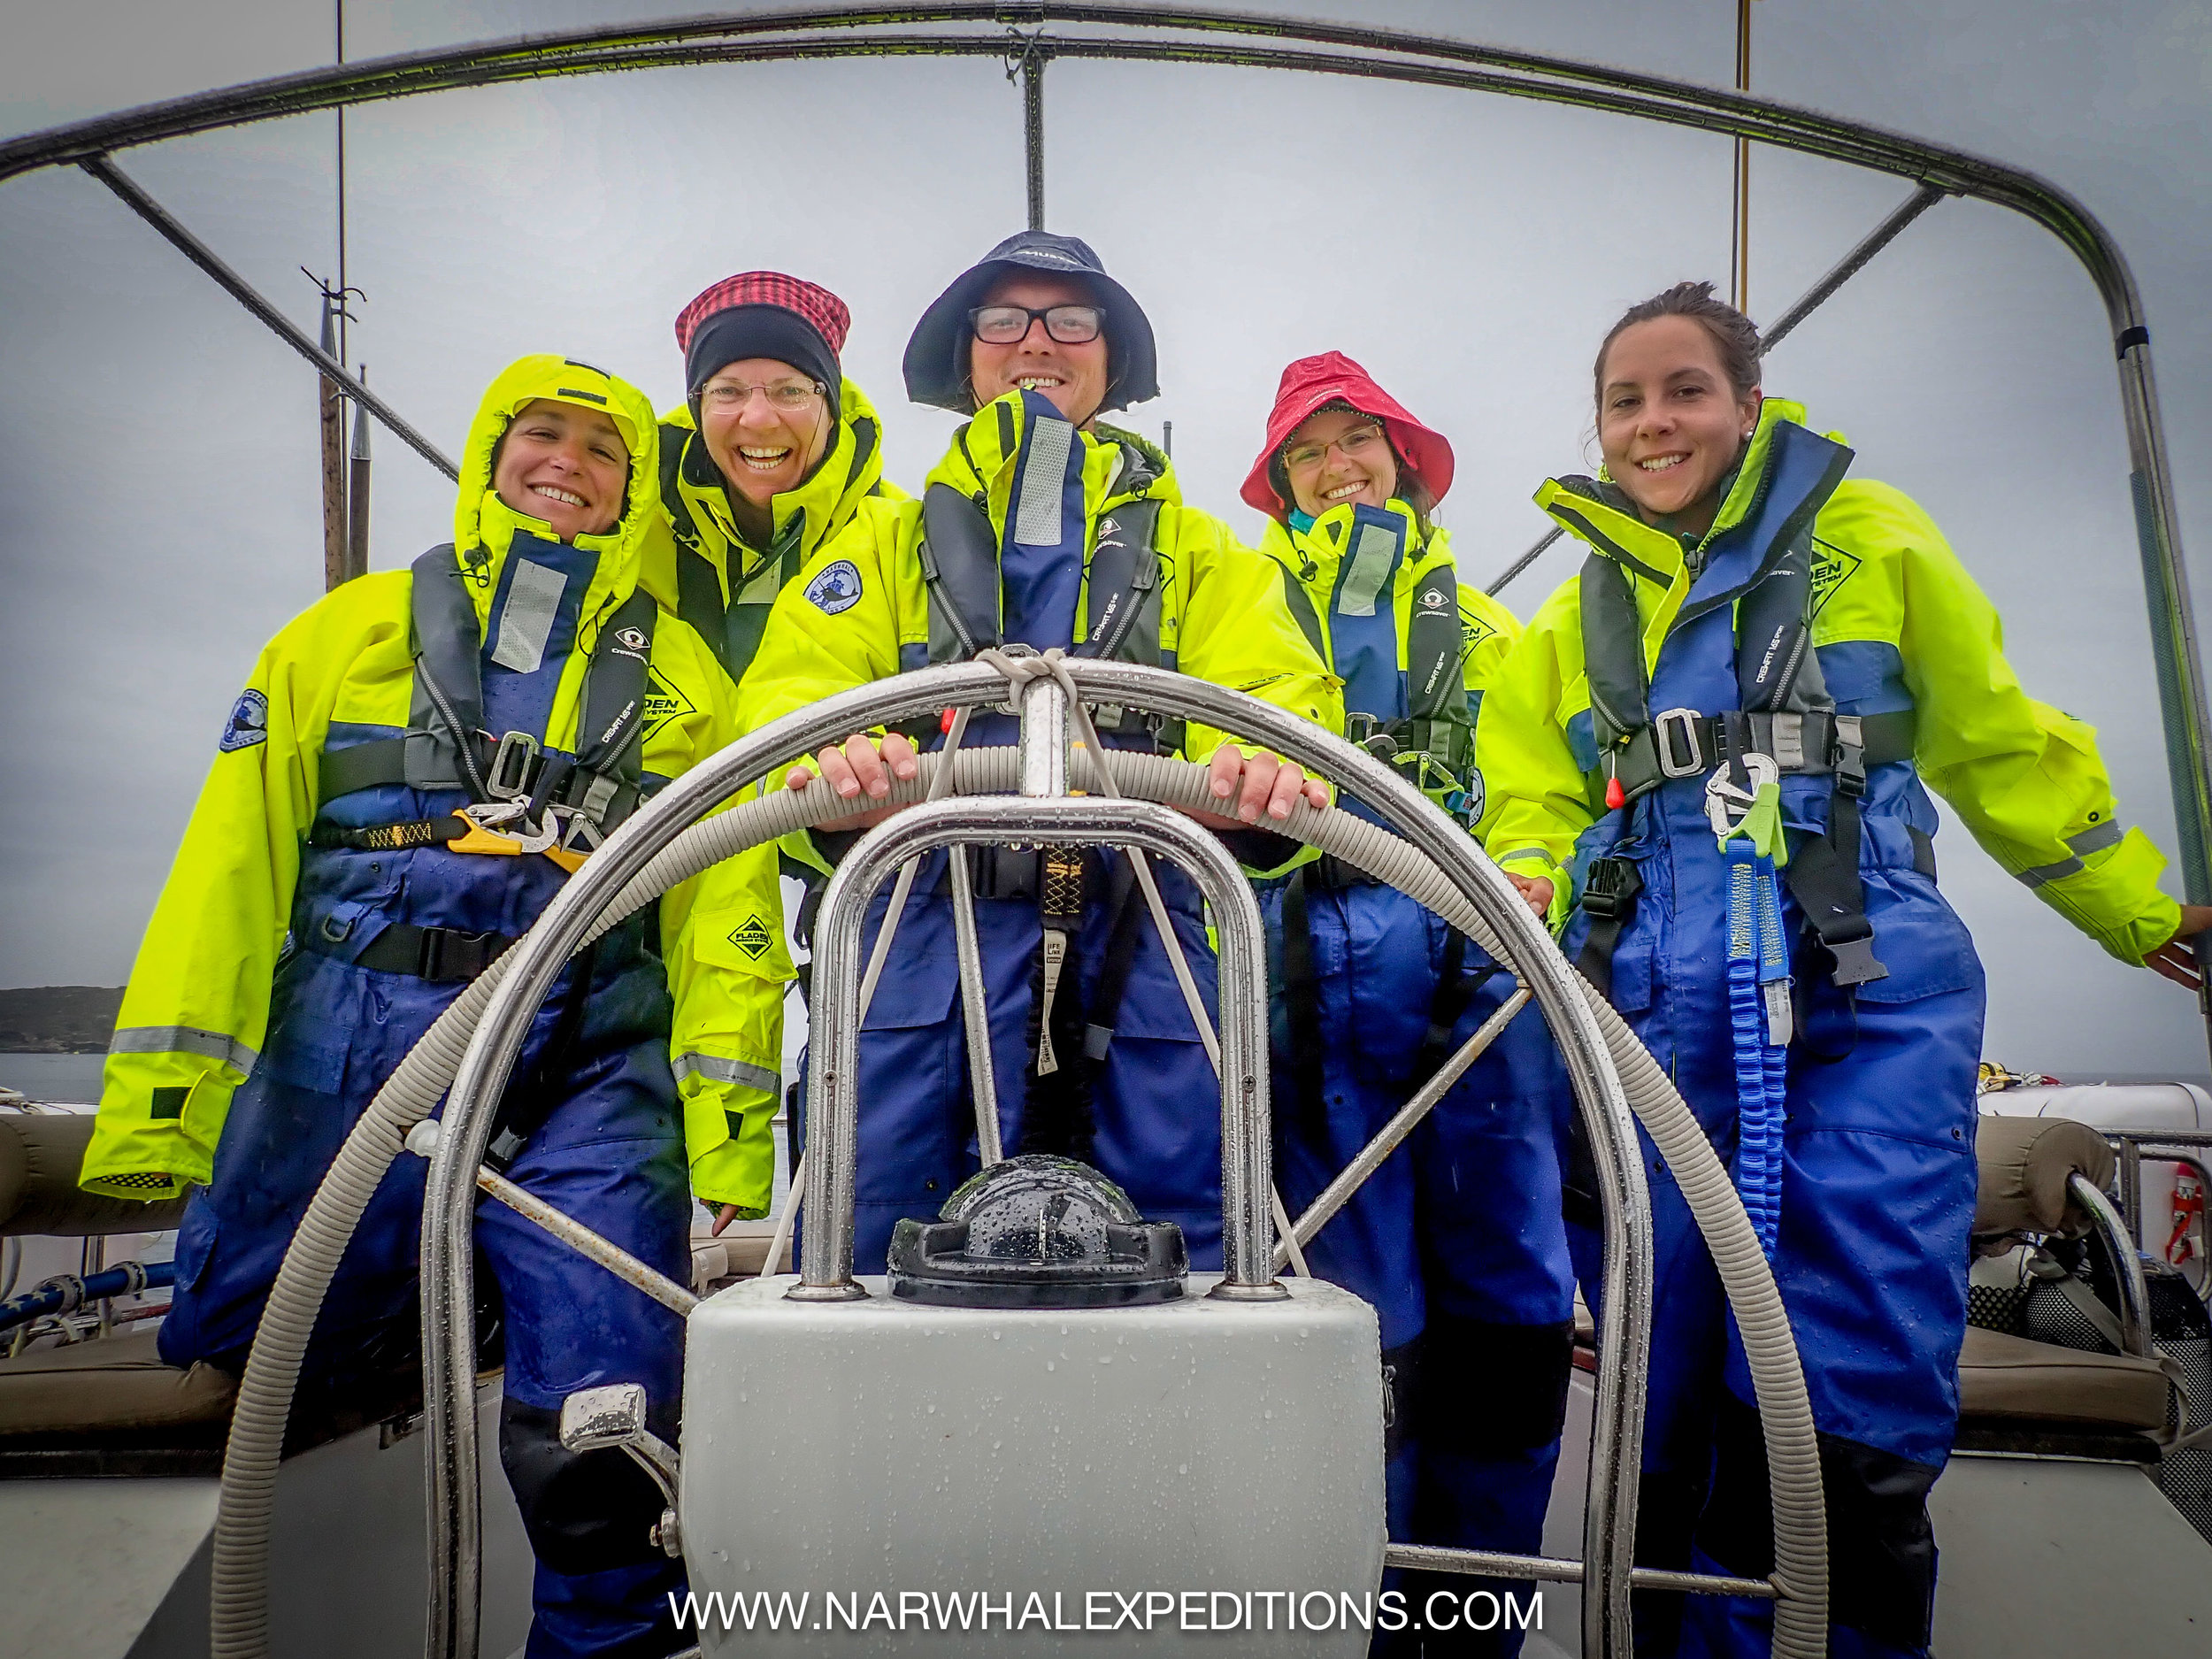 Meet the crew: Crowdfunder winner and plastic cleaning ninja Wendy, Ocean sailor and pharmacist Maaike, self titled galley slave and generally awesome at everything Eric, Biochemist and chief cetacean spotter Lisa, expedition film maker Caroline, plus yours truly behind the camera.